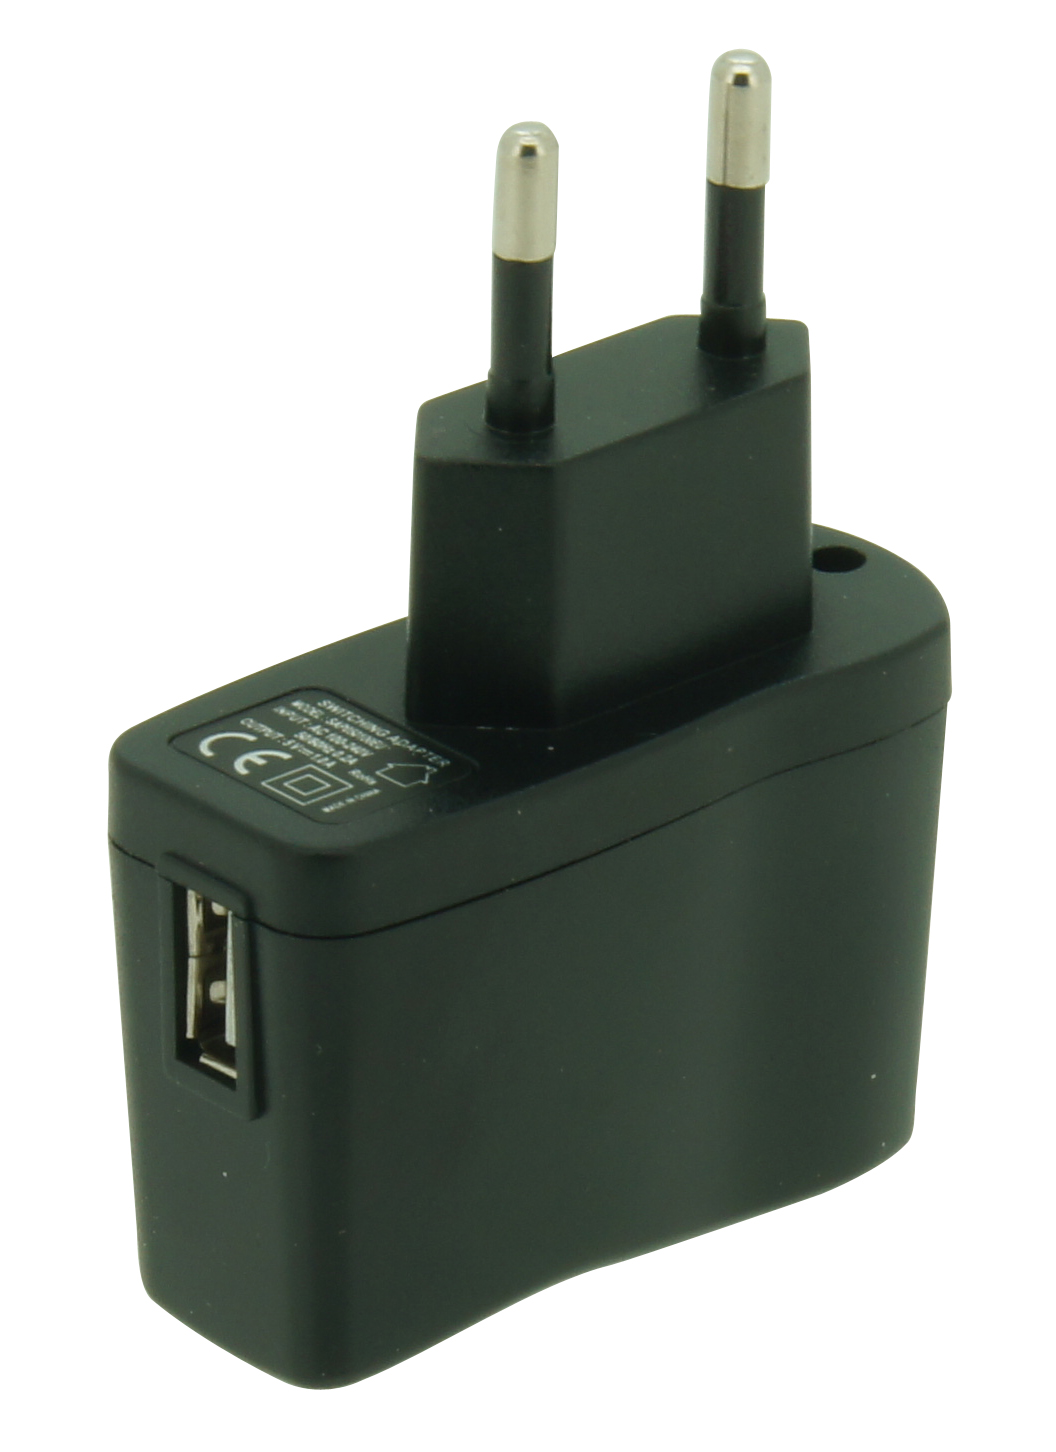 USB tablet charger 1A